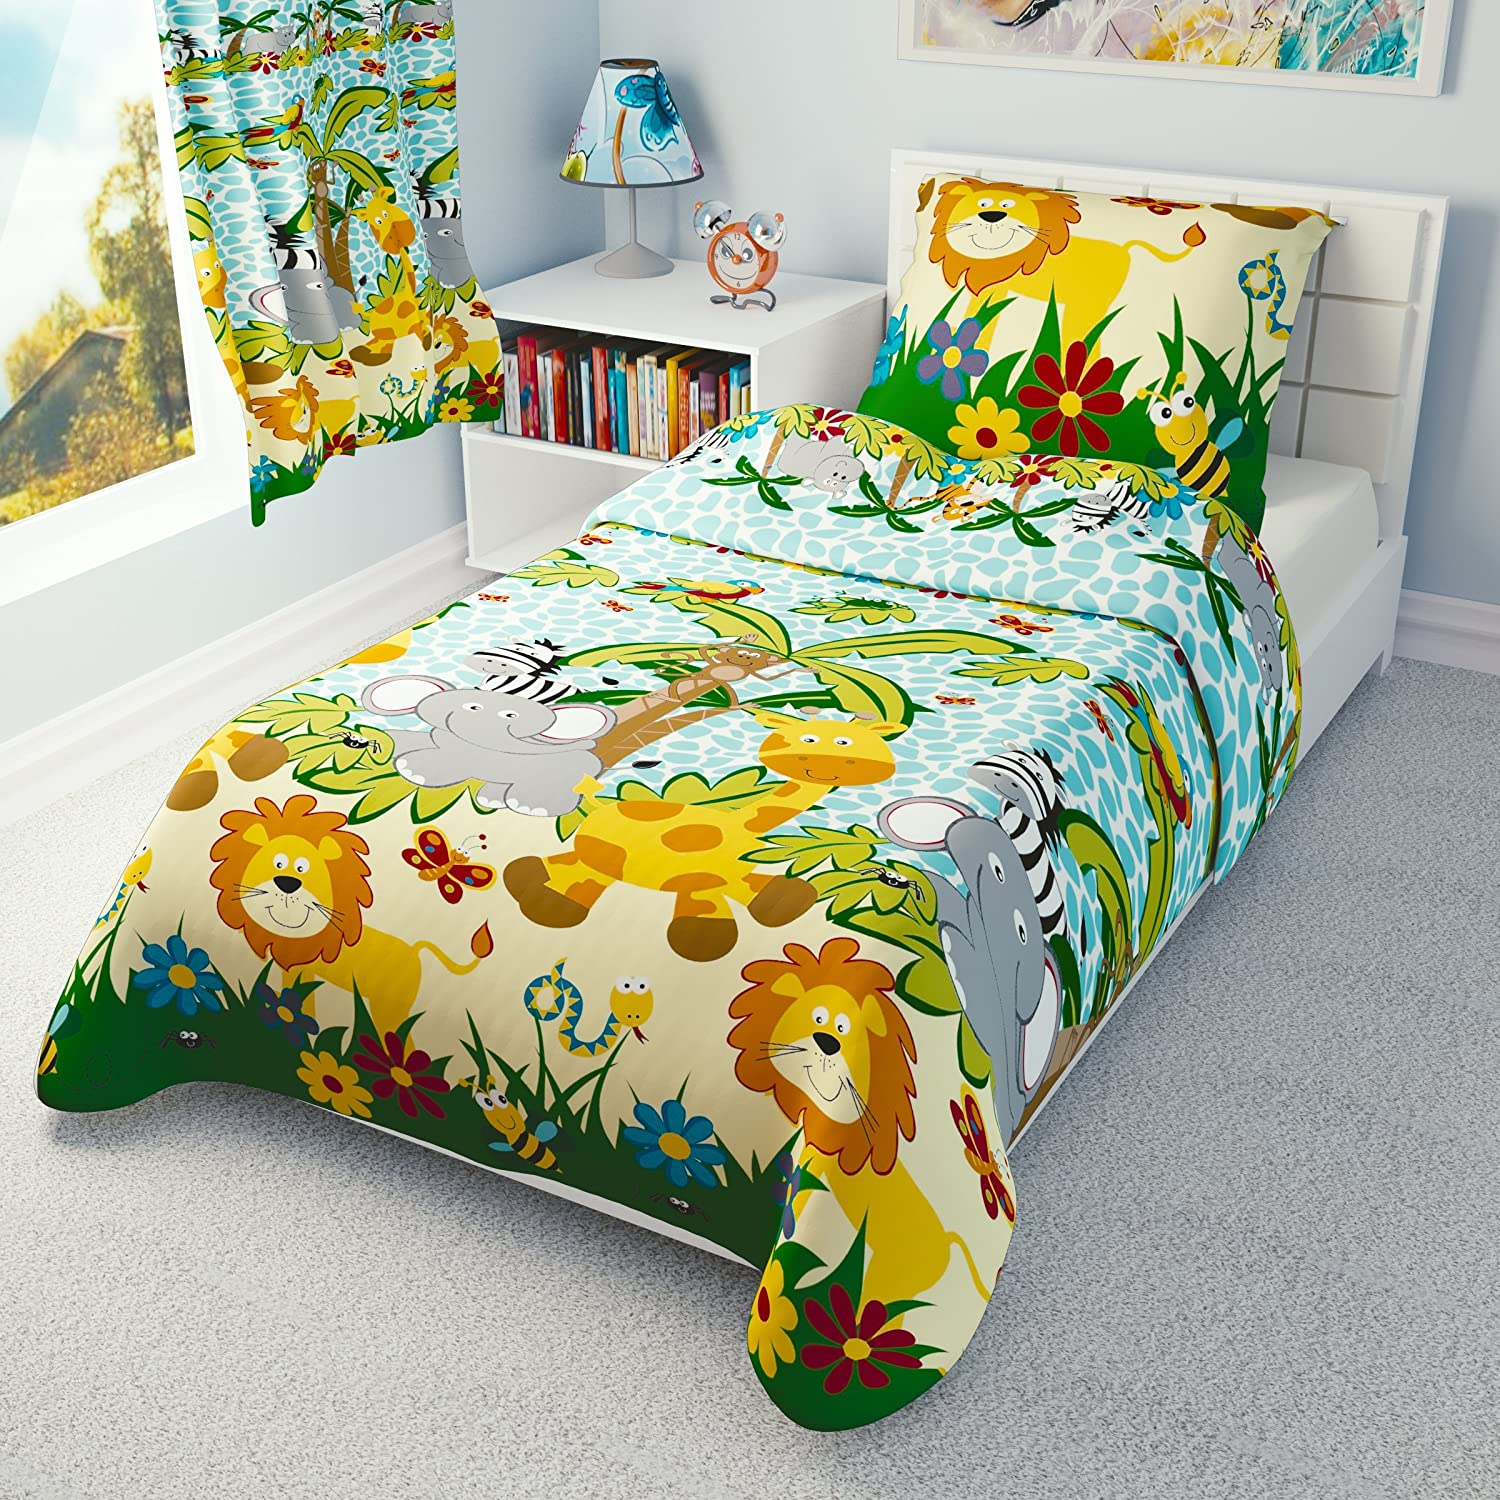 Pillowcase to fit Cot//Cot Bed//Toddler Bed 100/% Cotton 100x135 cm Jungle Animals Boys Nursery Bedding Set Duvet Cover